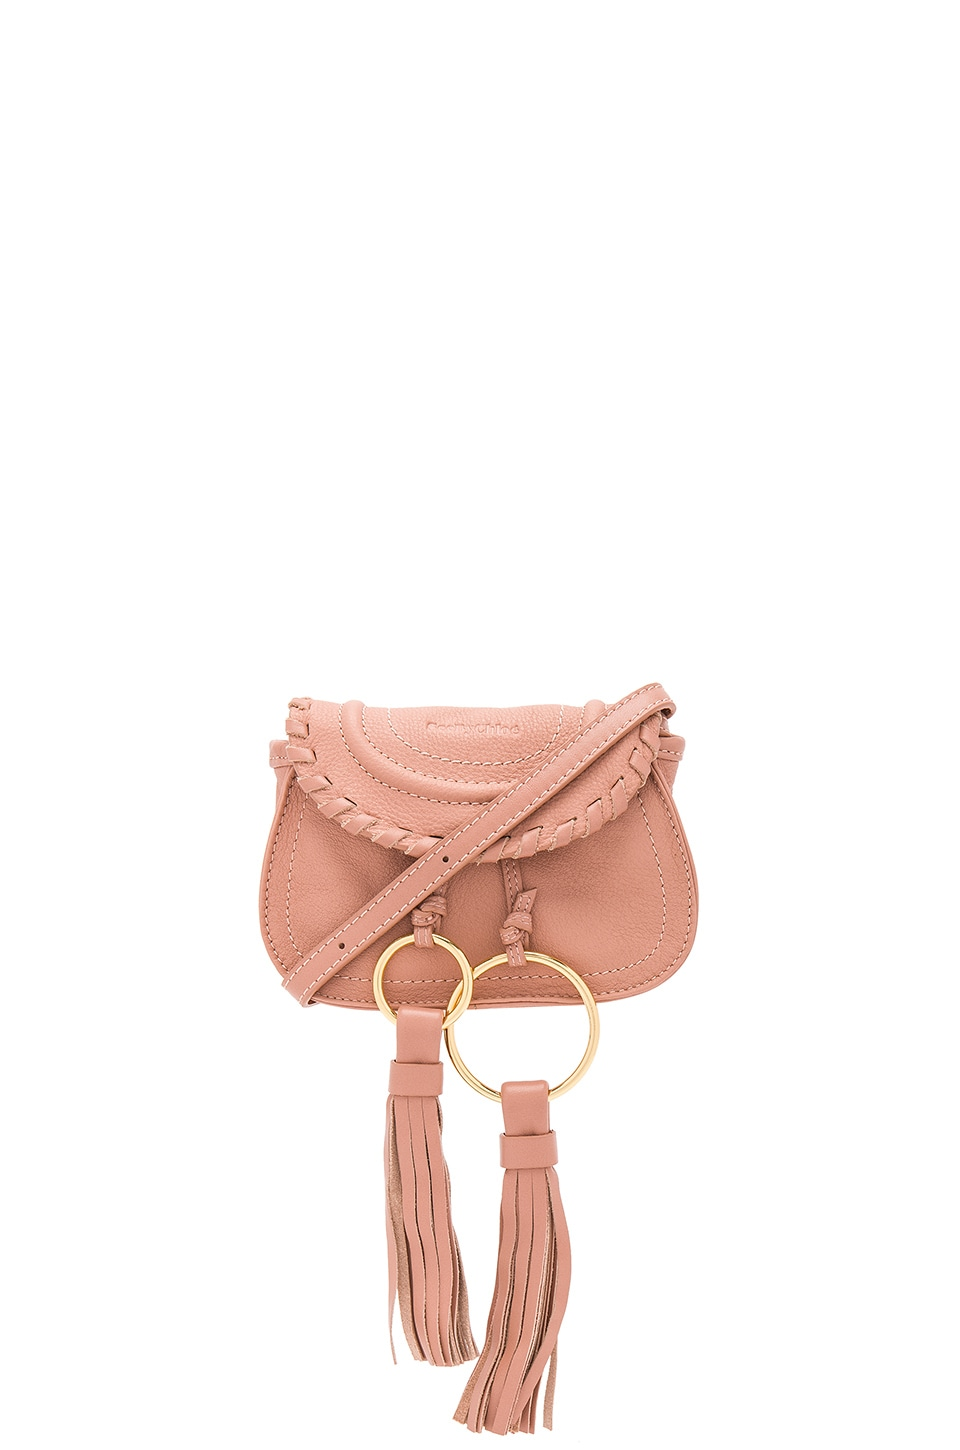 See By Chloe Polly Mini Crossbody Bag in Cheek